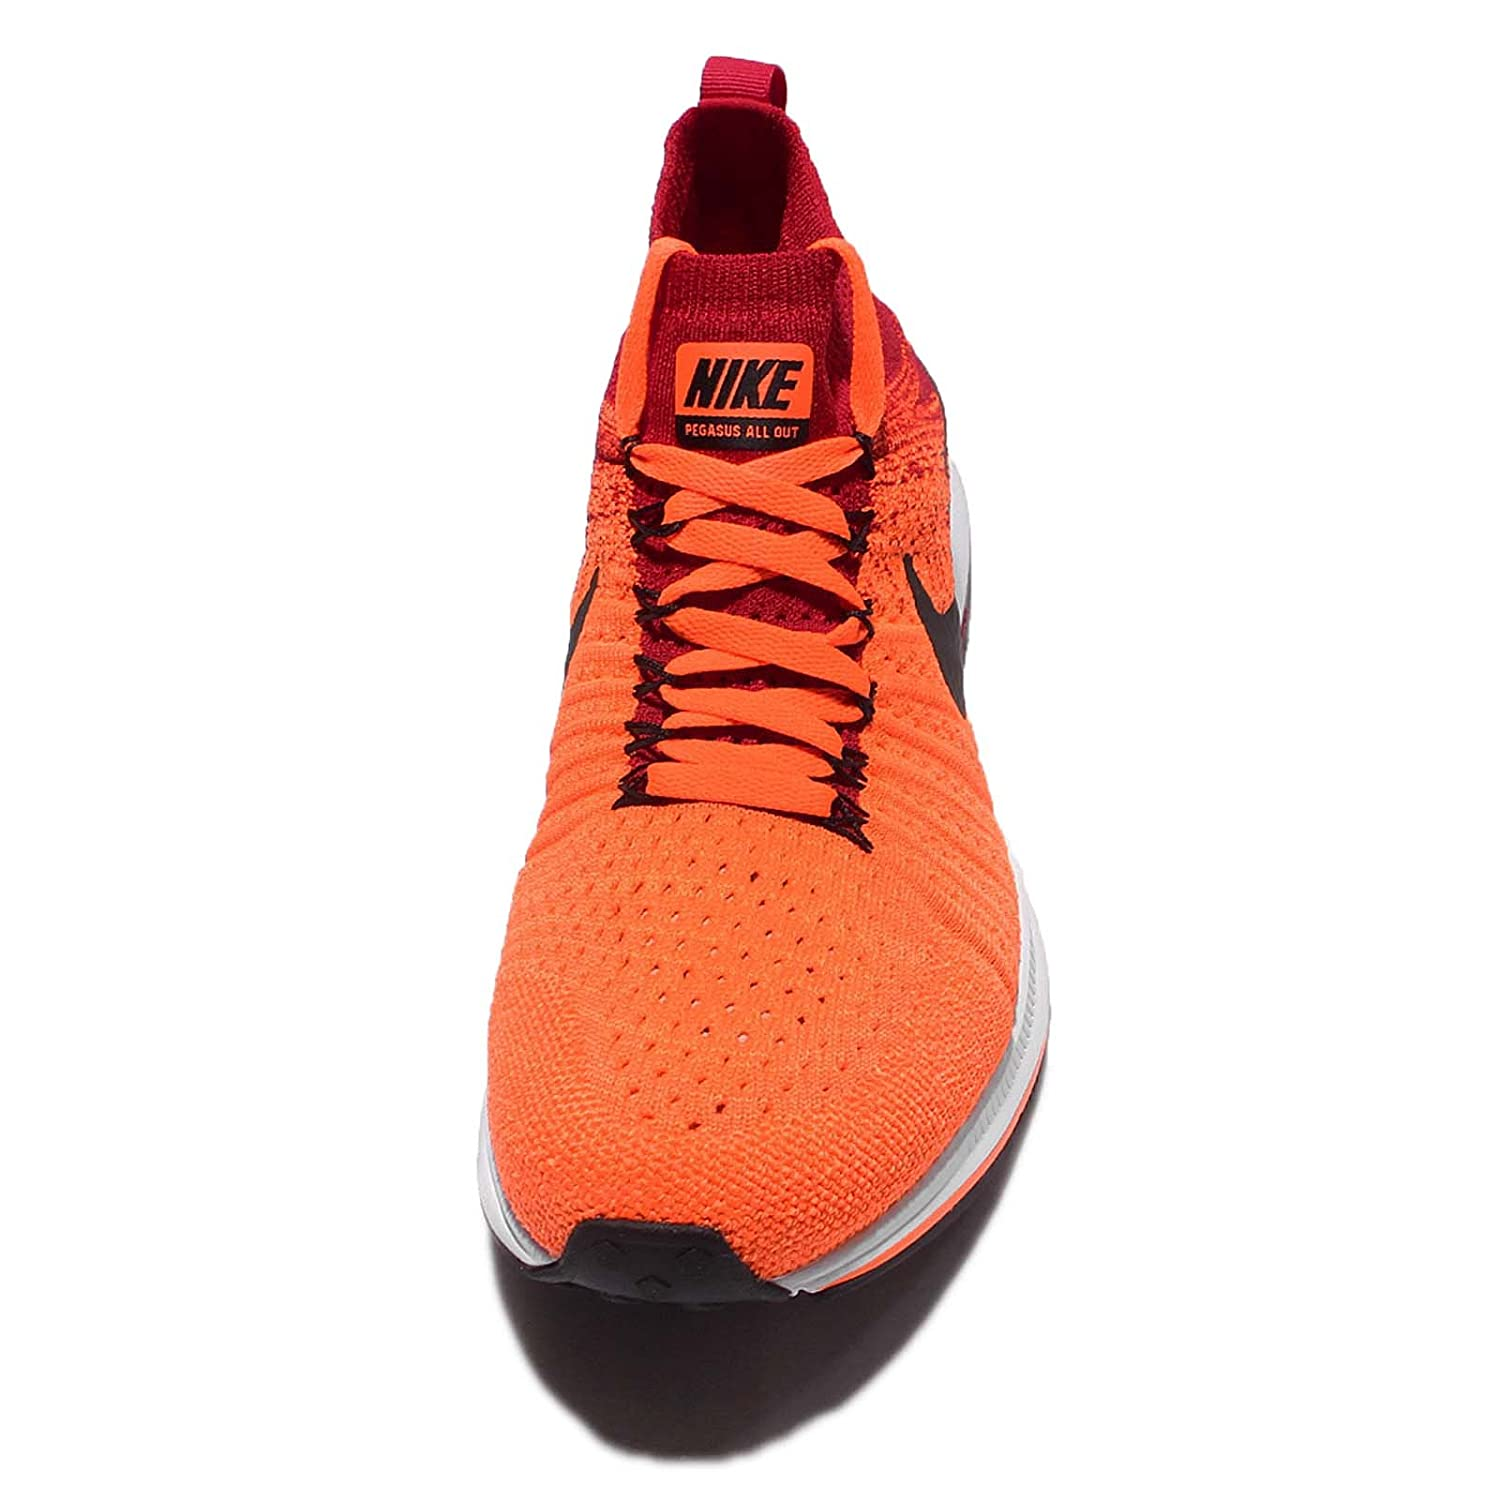 75e90542bd43 ... reduced amazon nike kids zm pegasus all out flyknit gs total orange  black university red youth